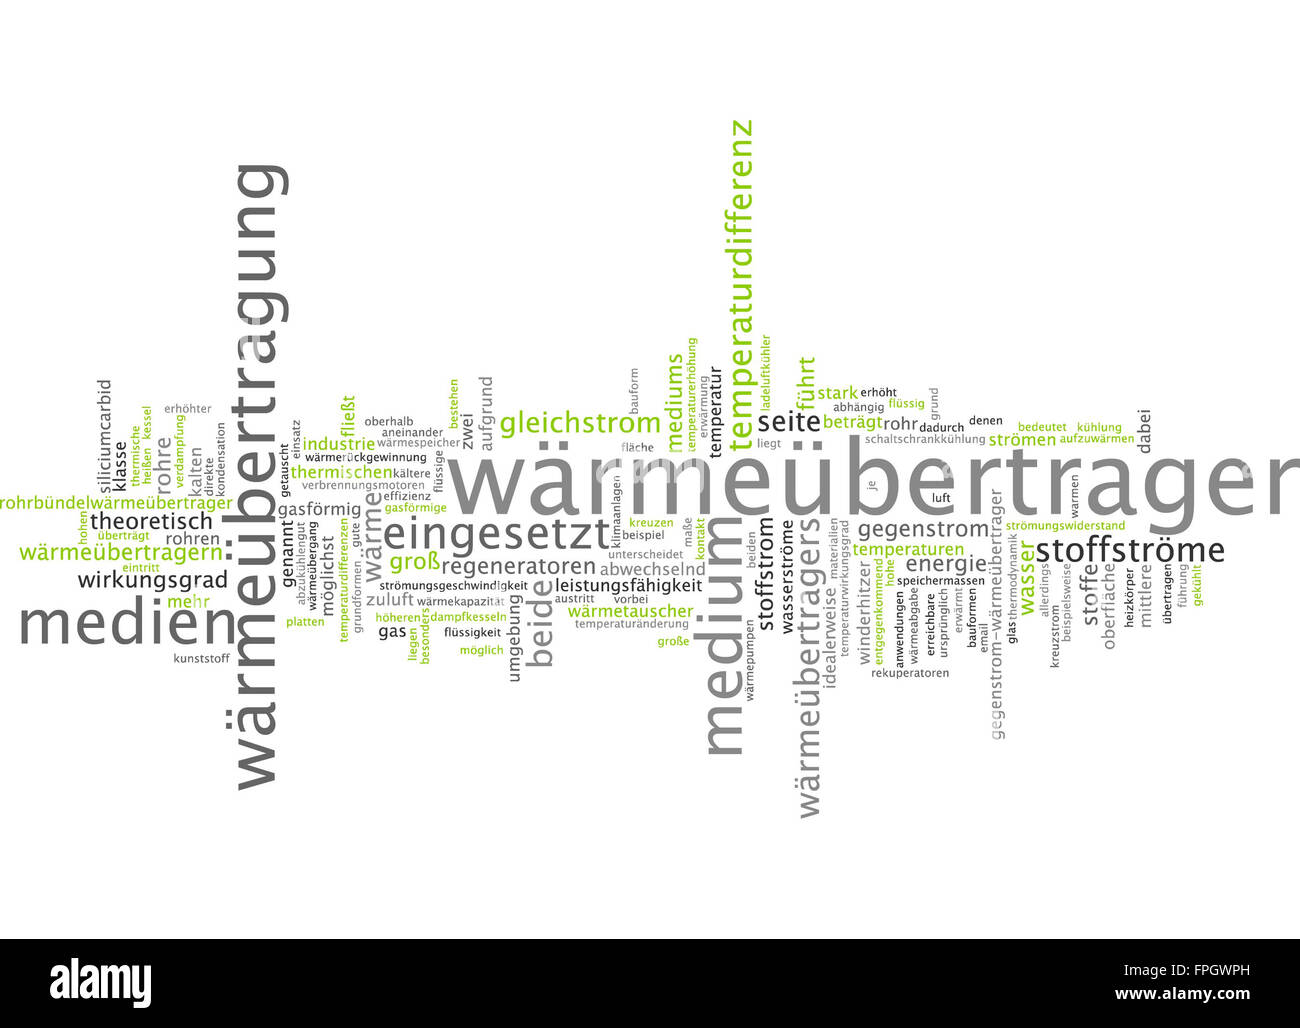 Gleichstrom Stock Photos & Gleichstrom Stock Images - Alamy